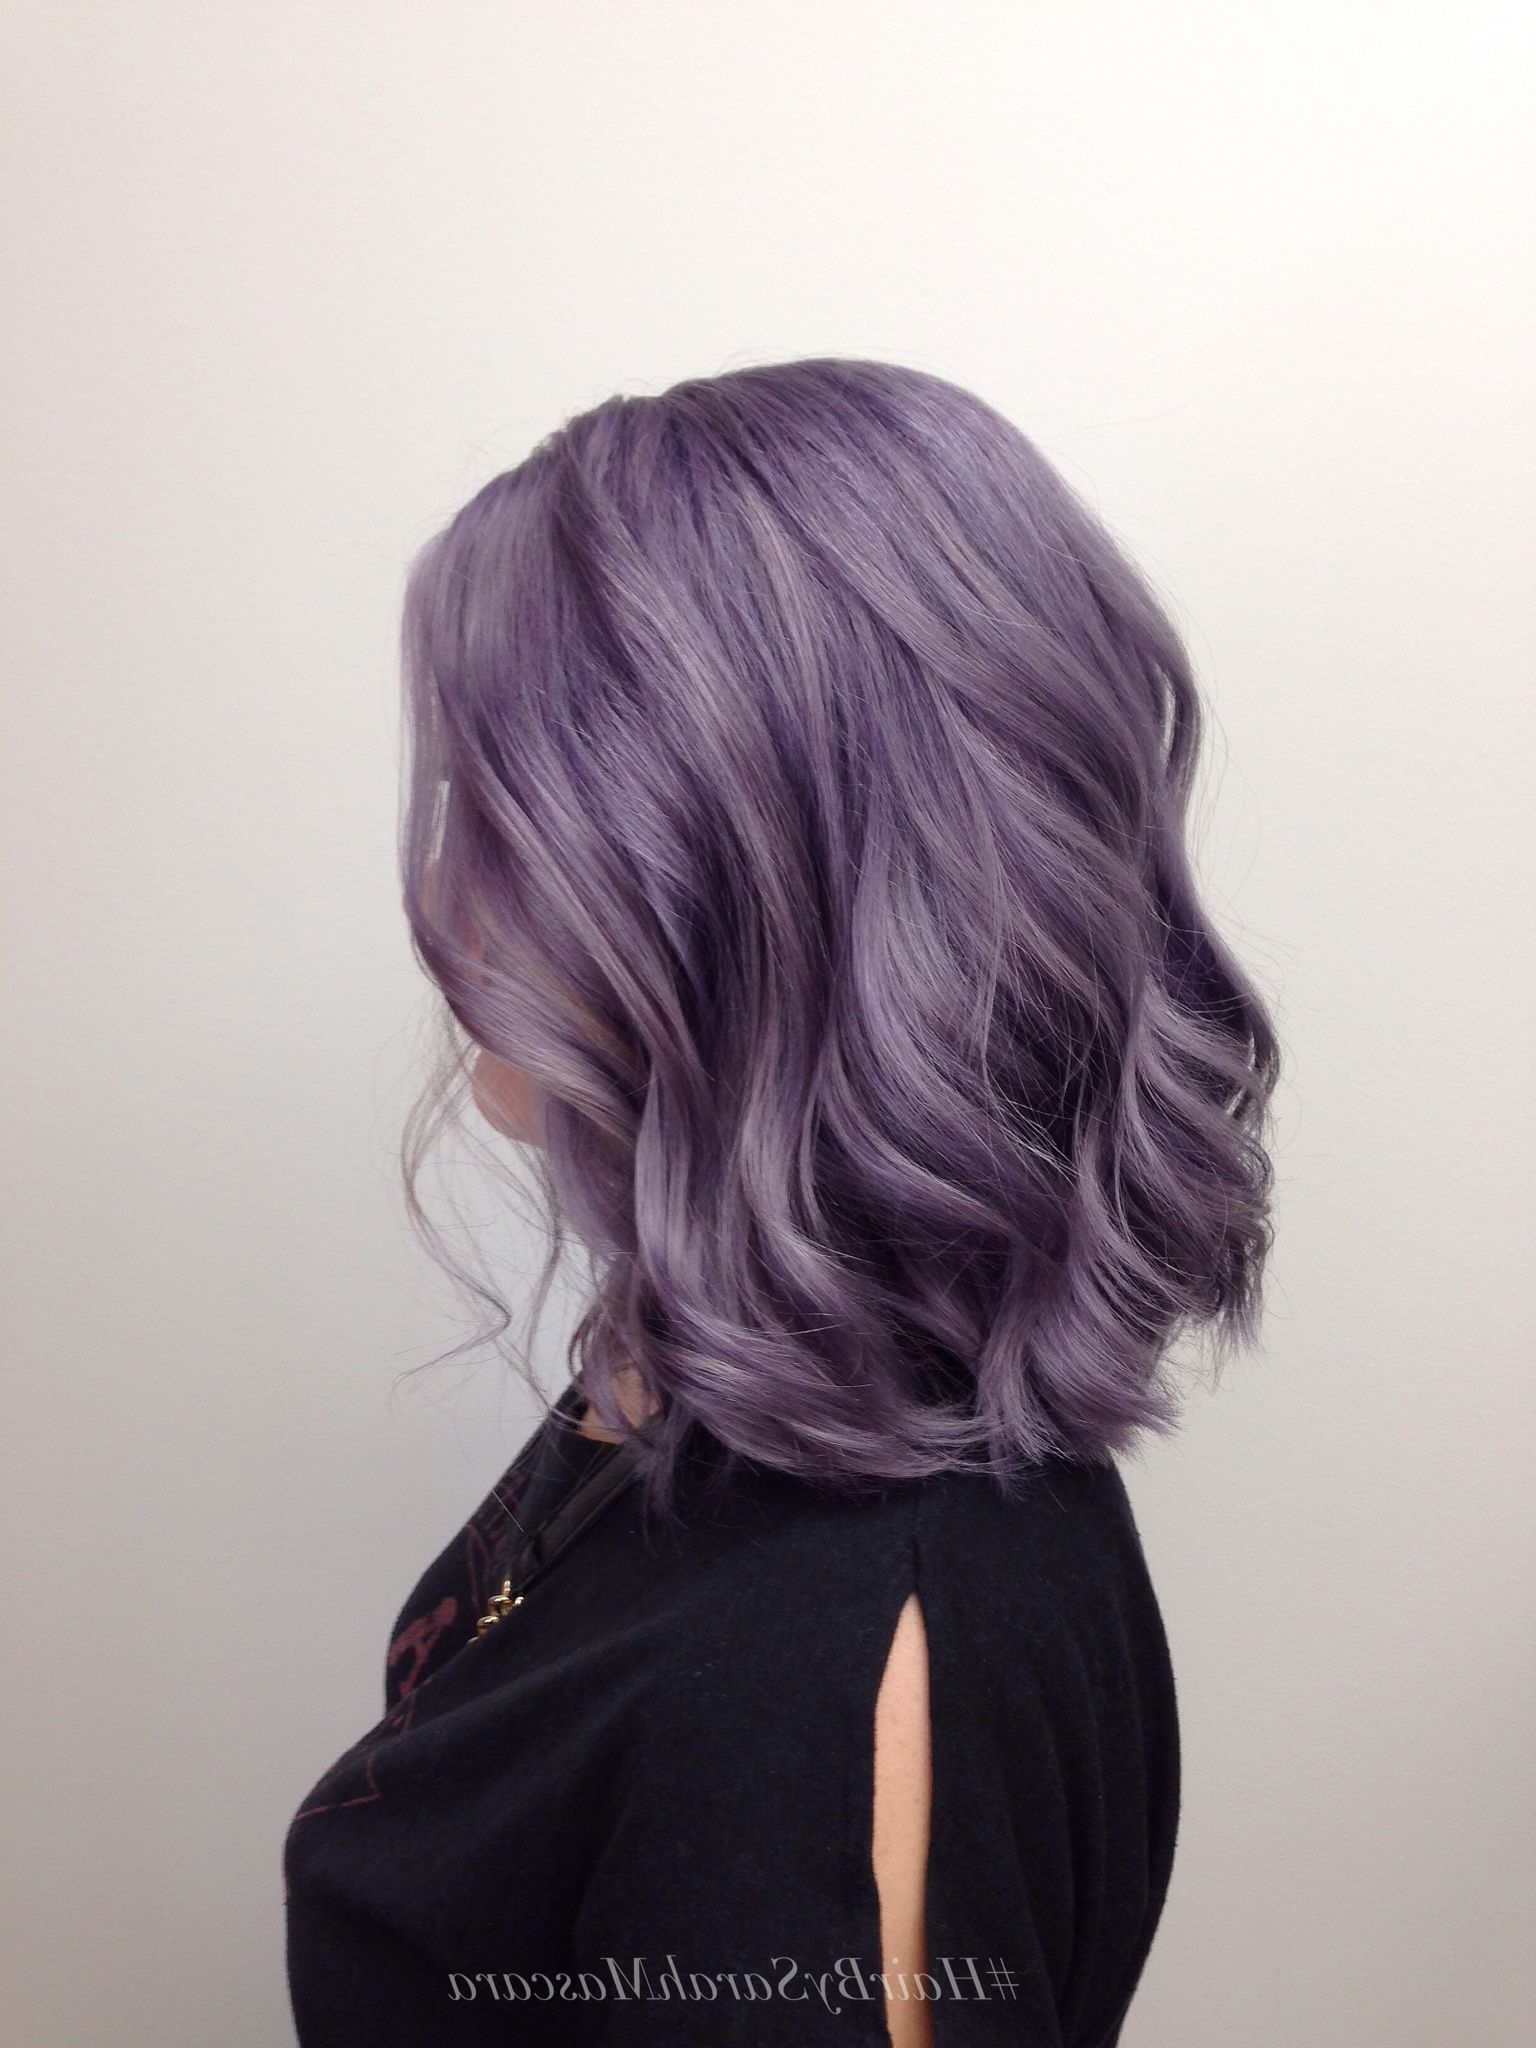 Obsessing Over This Beautiful Smokey Lavender Hair! Who Else Would With Lavender Hairstyles For Women Over (View 8 of 20)